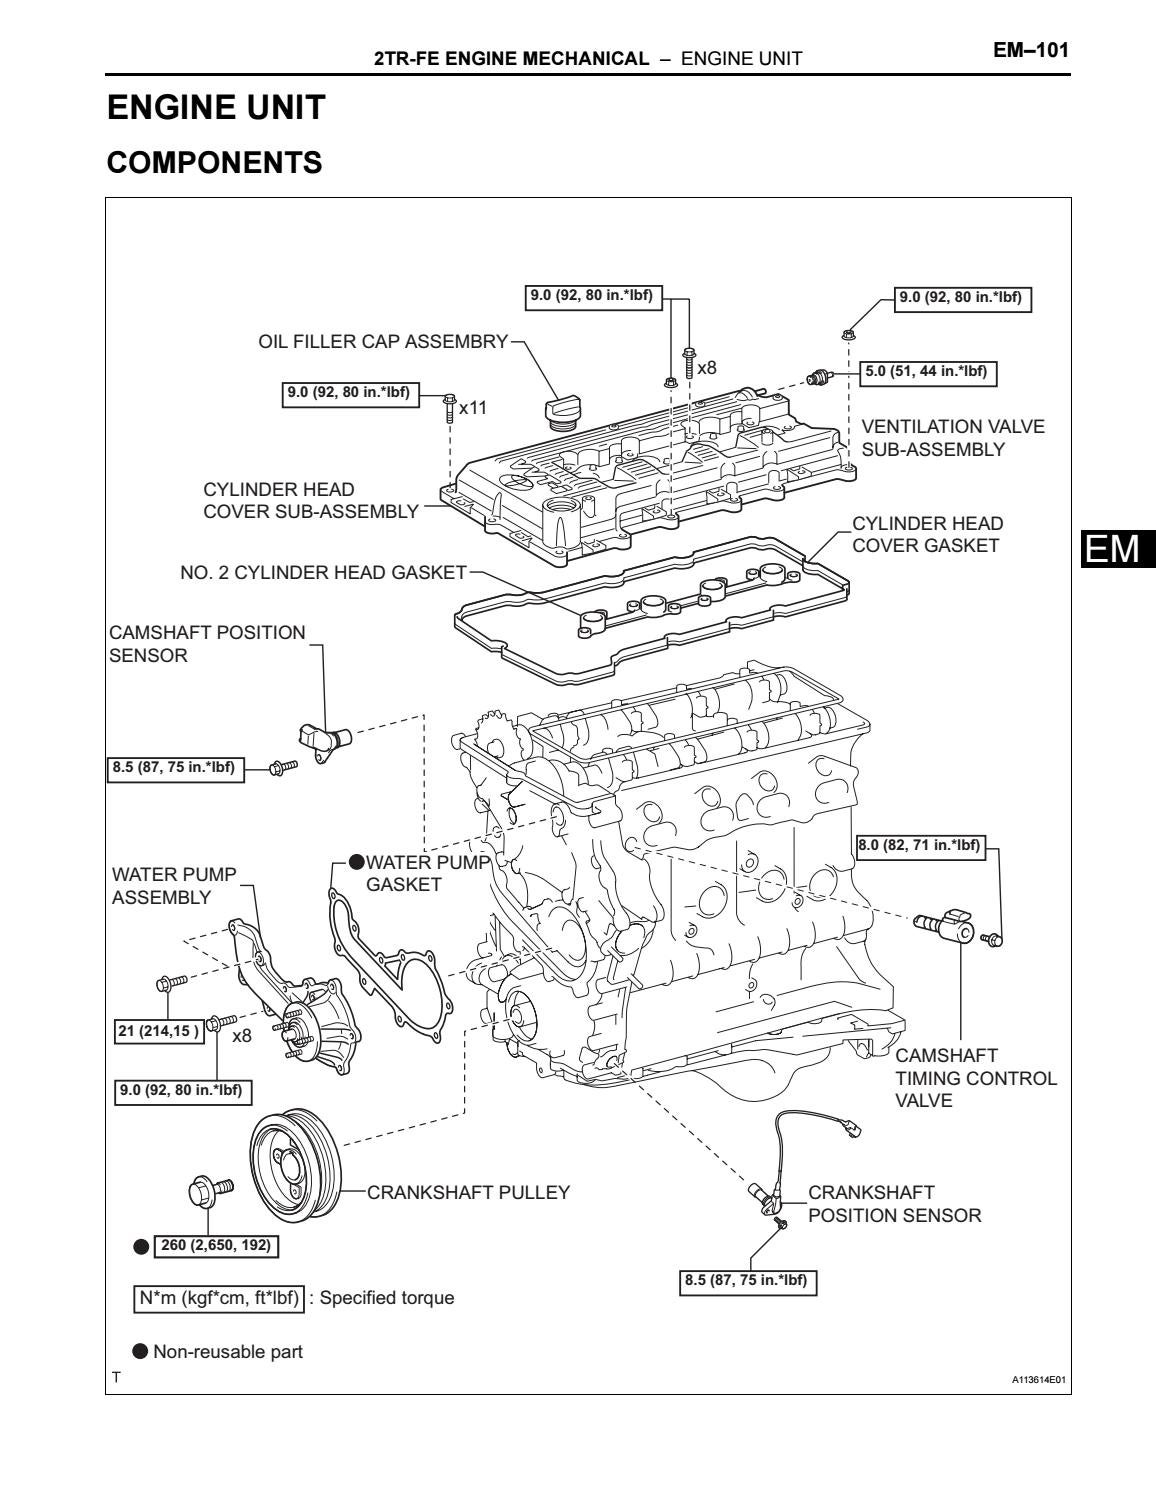 2004 Chevy Express 3500 Wiring Diagram Gota Wiring Diagram